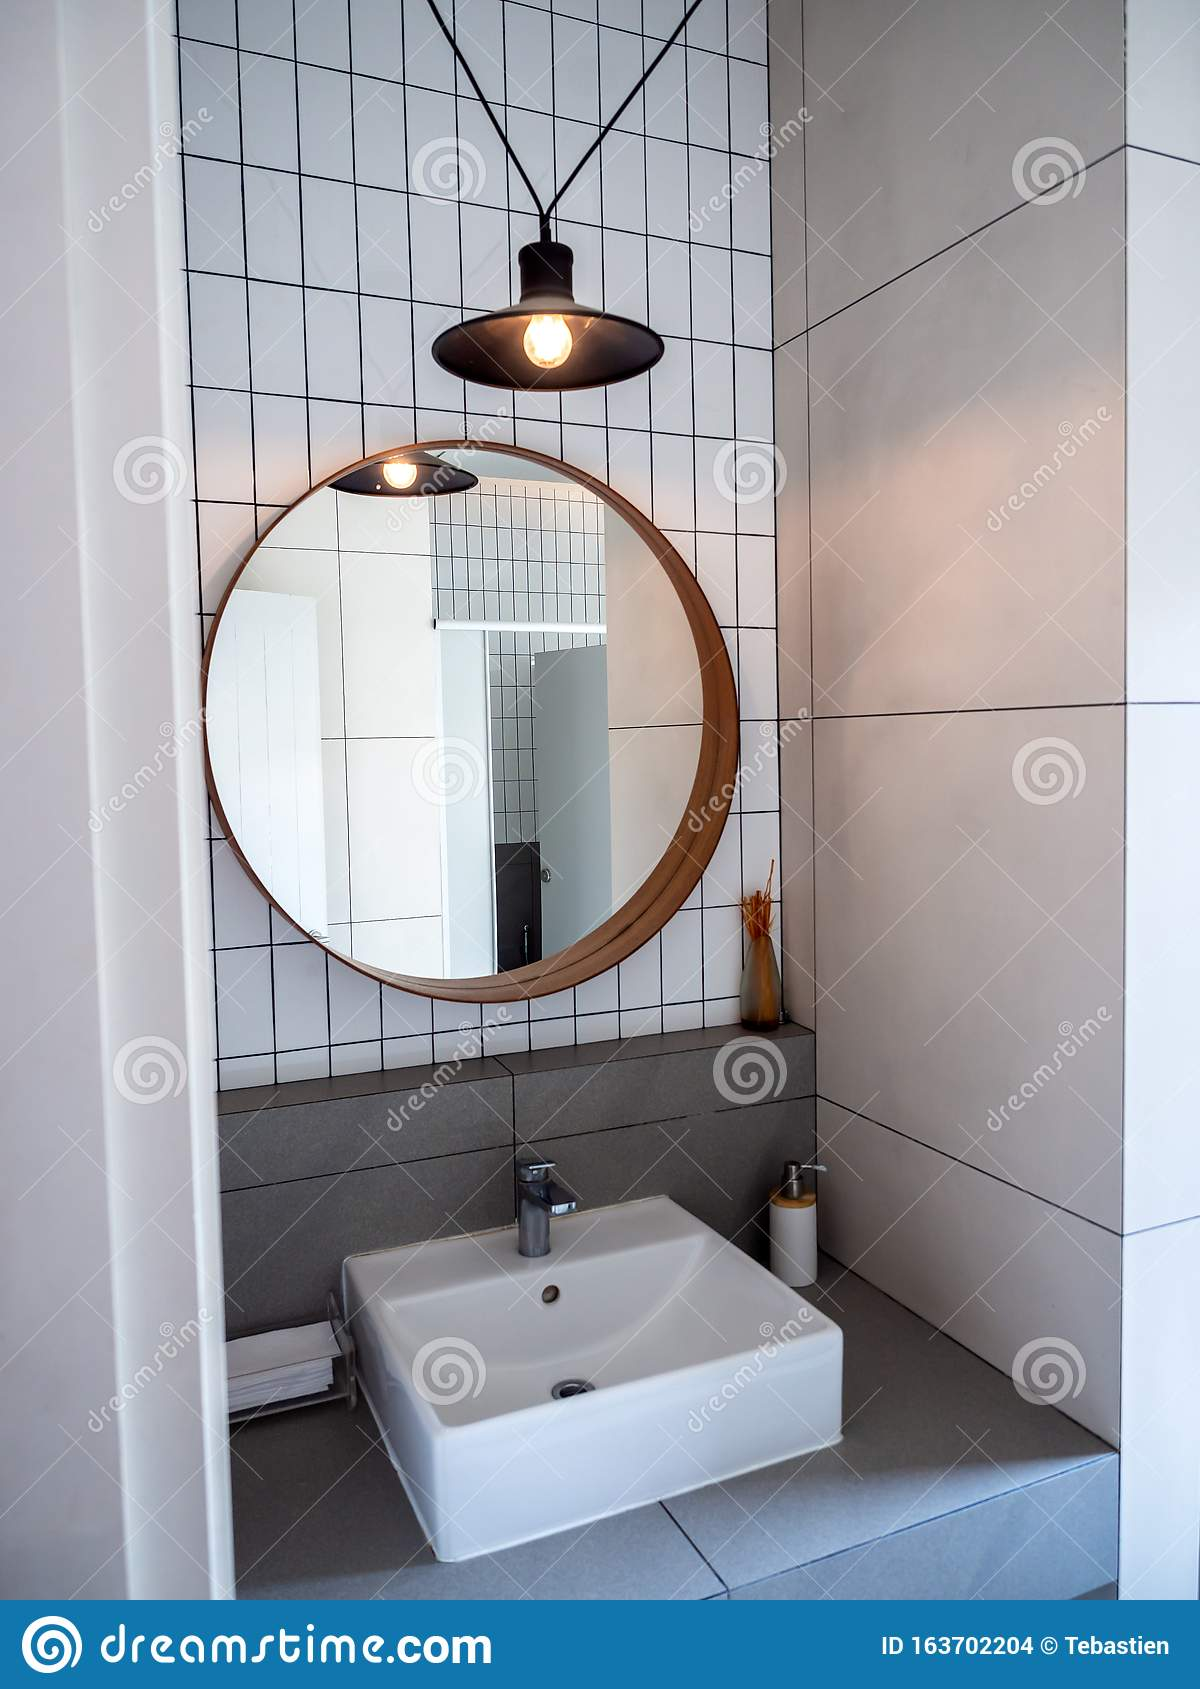 Round Mirror Decoration In White Bathroom Editorial Stock Image Image Of Hygiene Bath 163702204